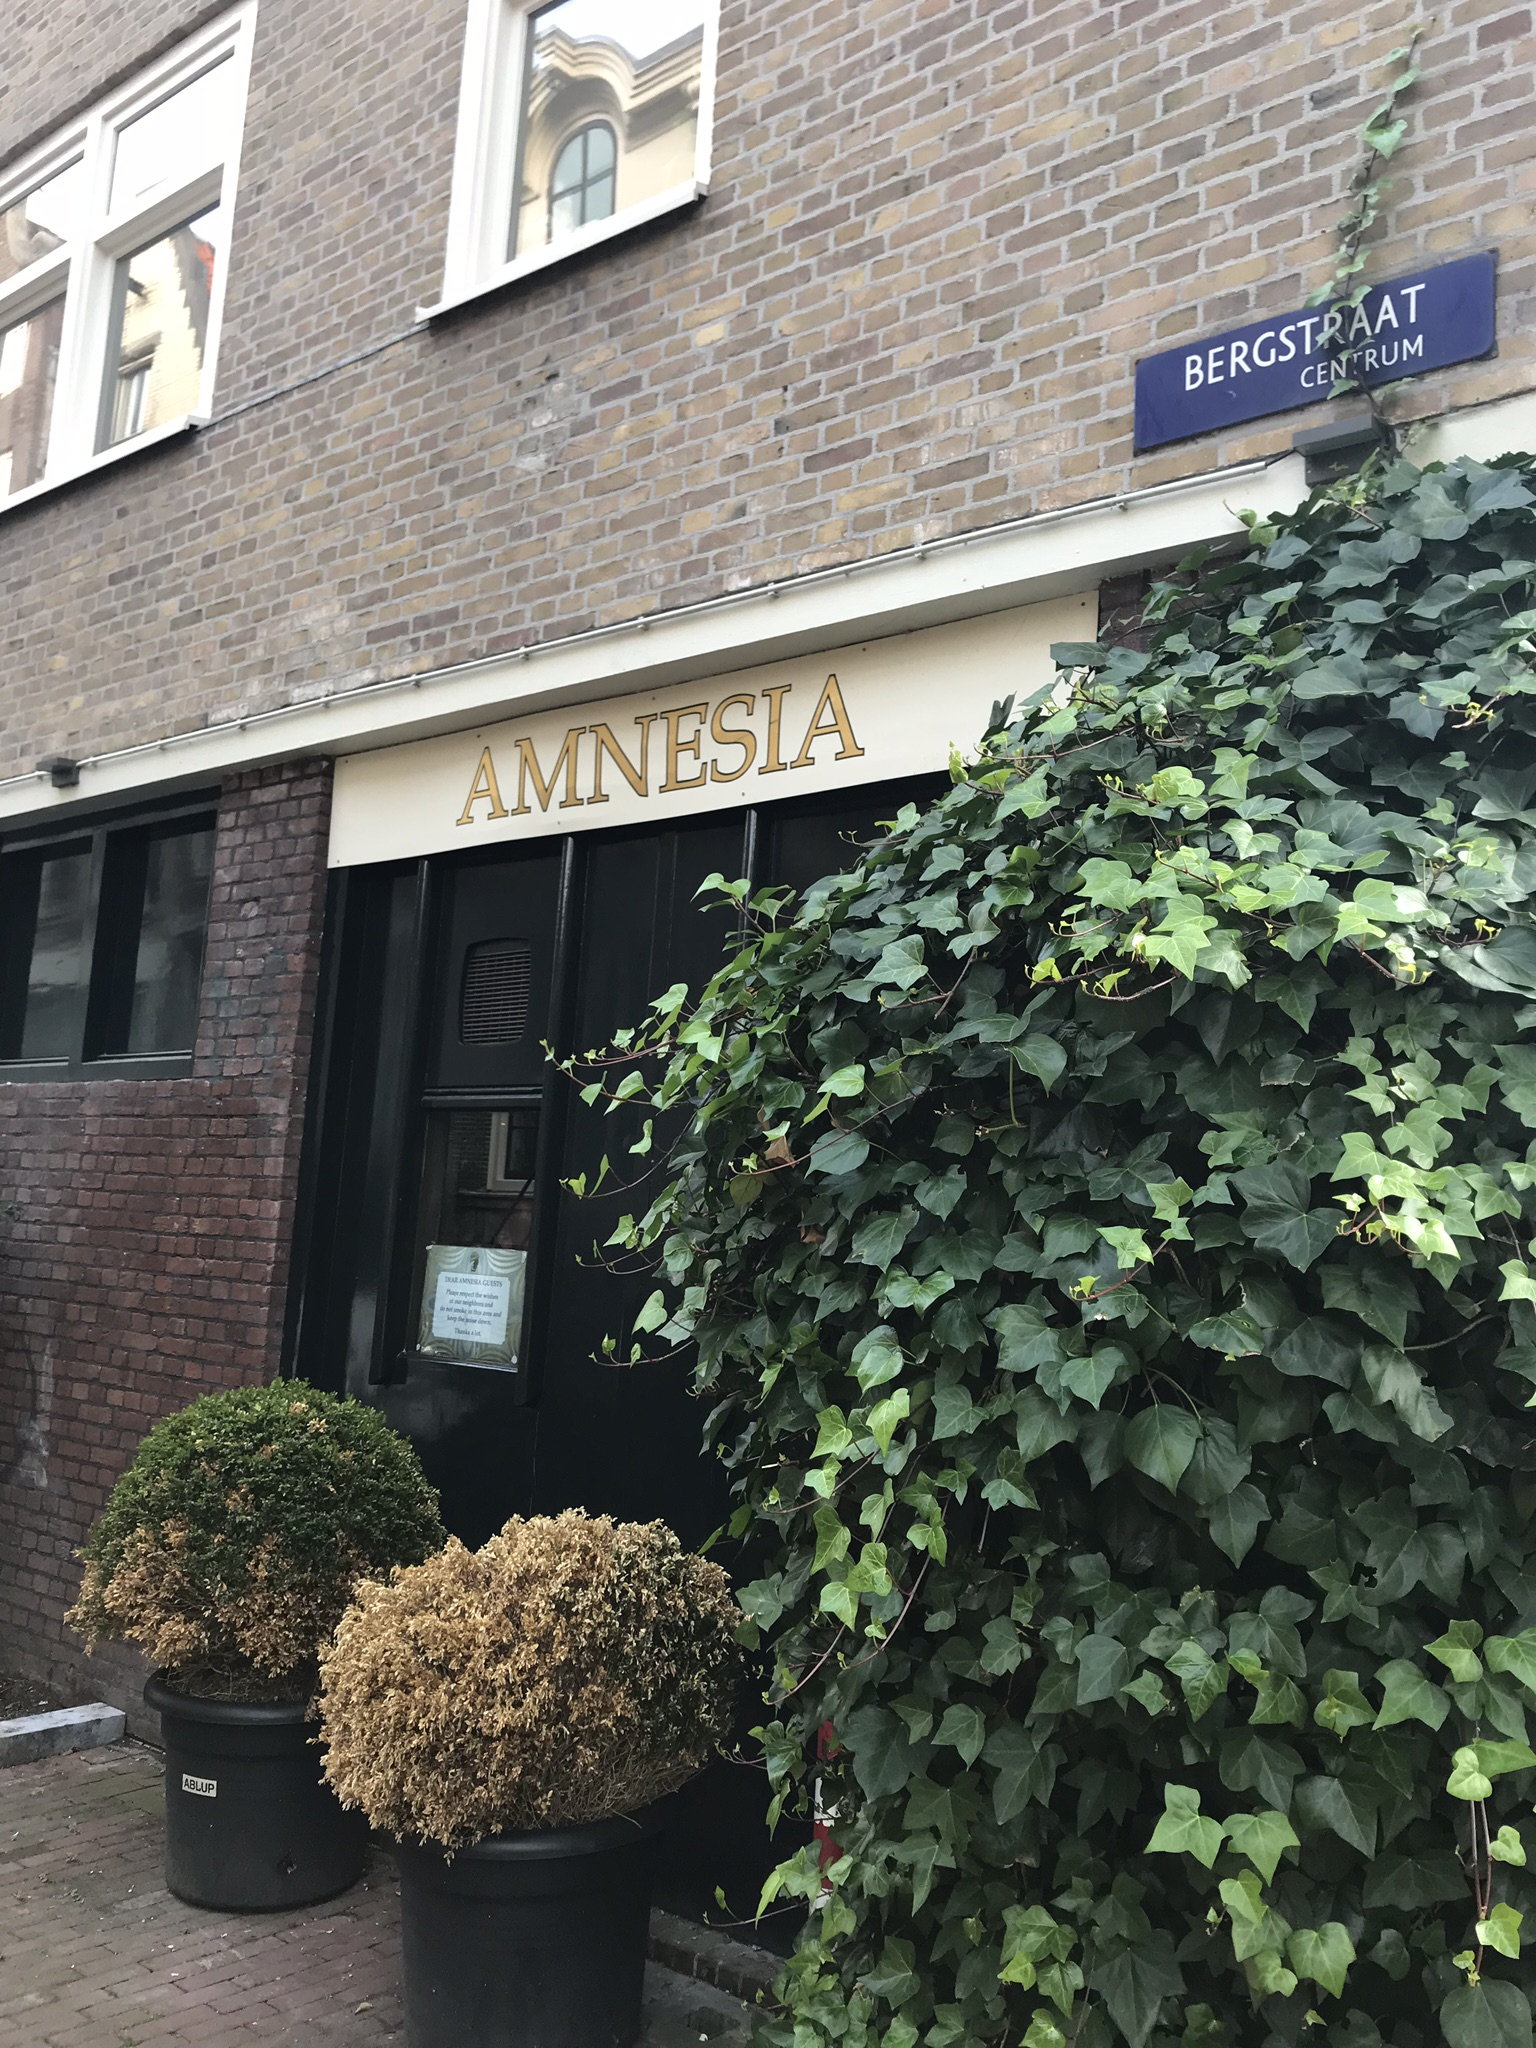 Relaxed Daytrip to Amsterdam